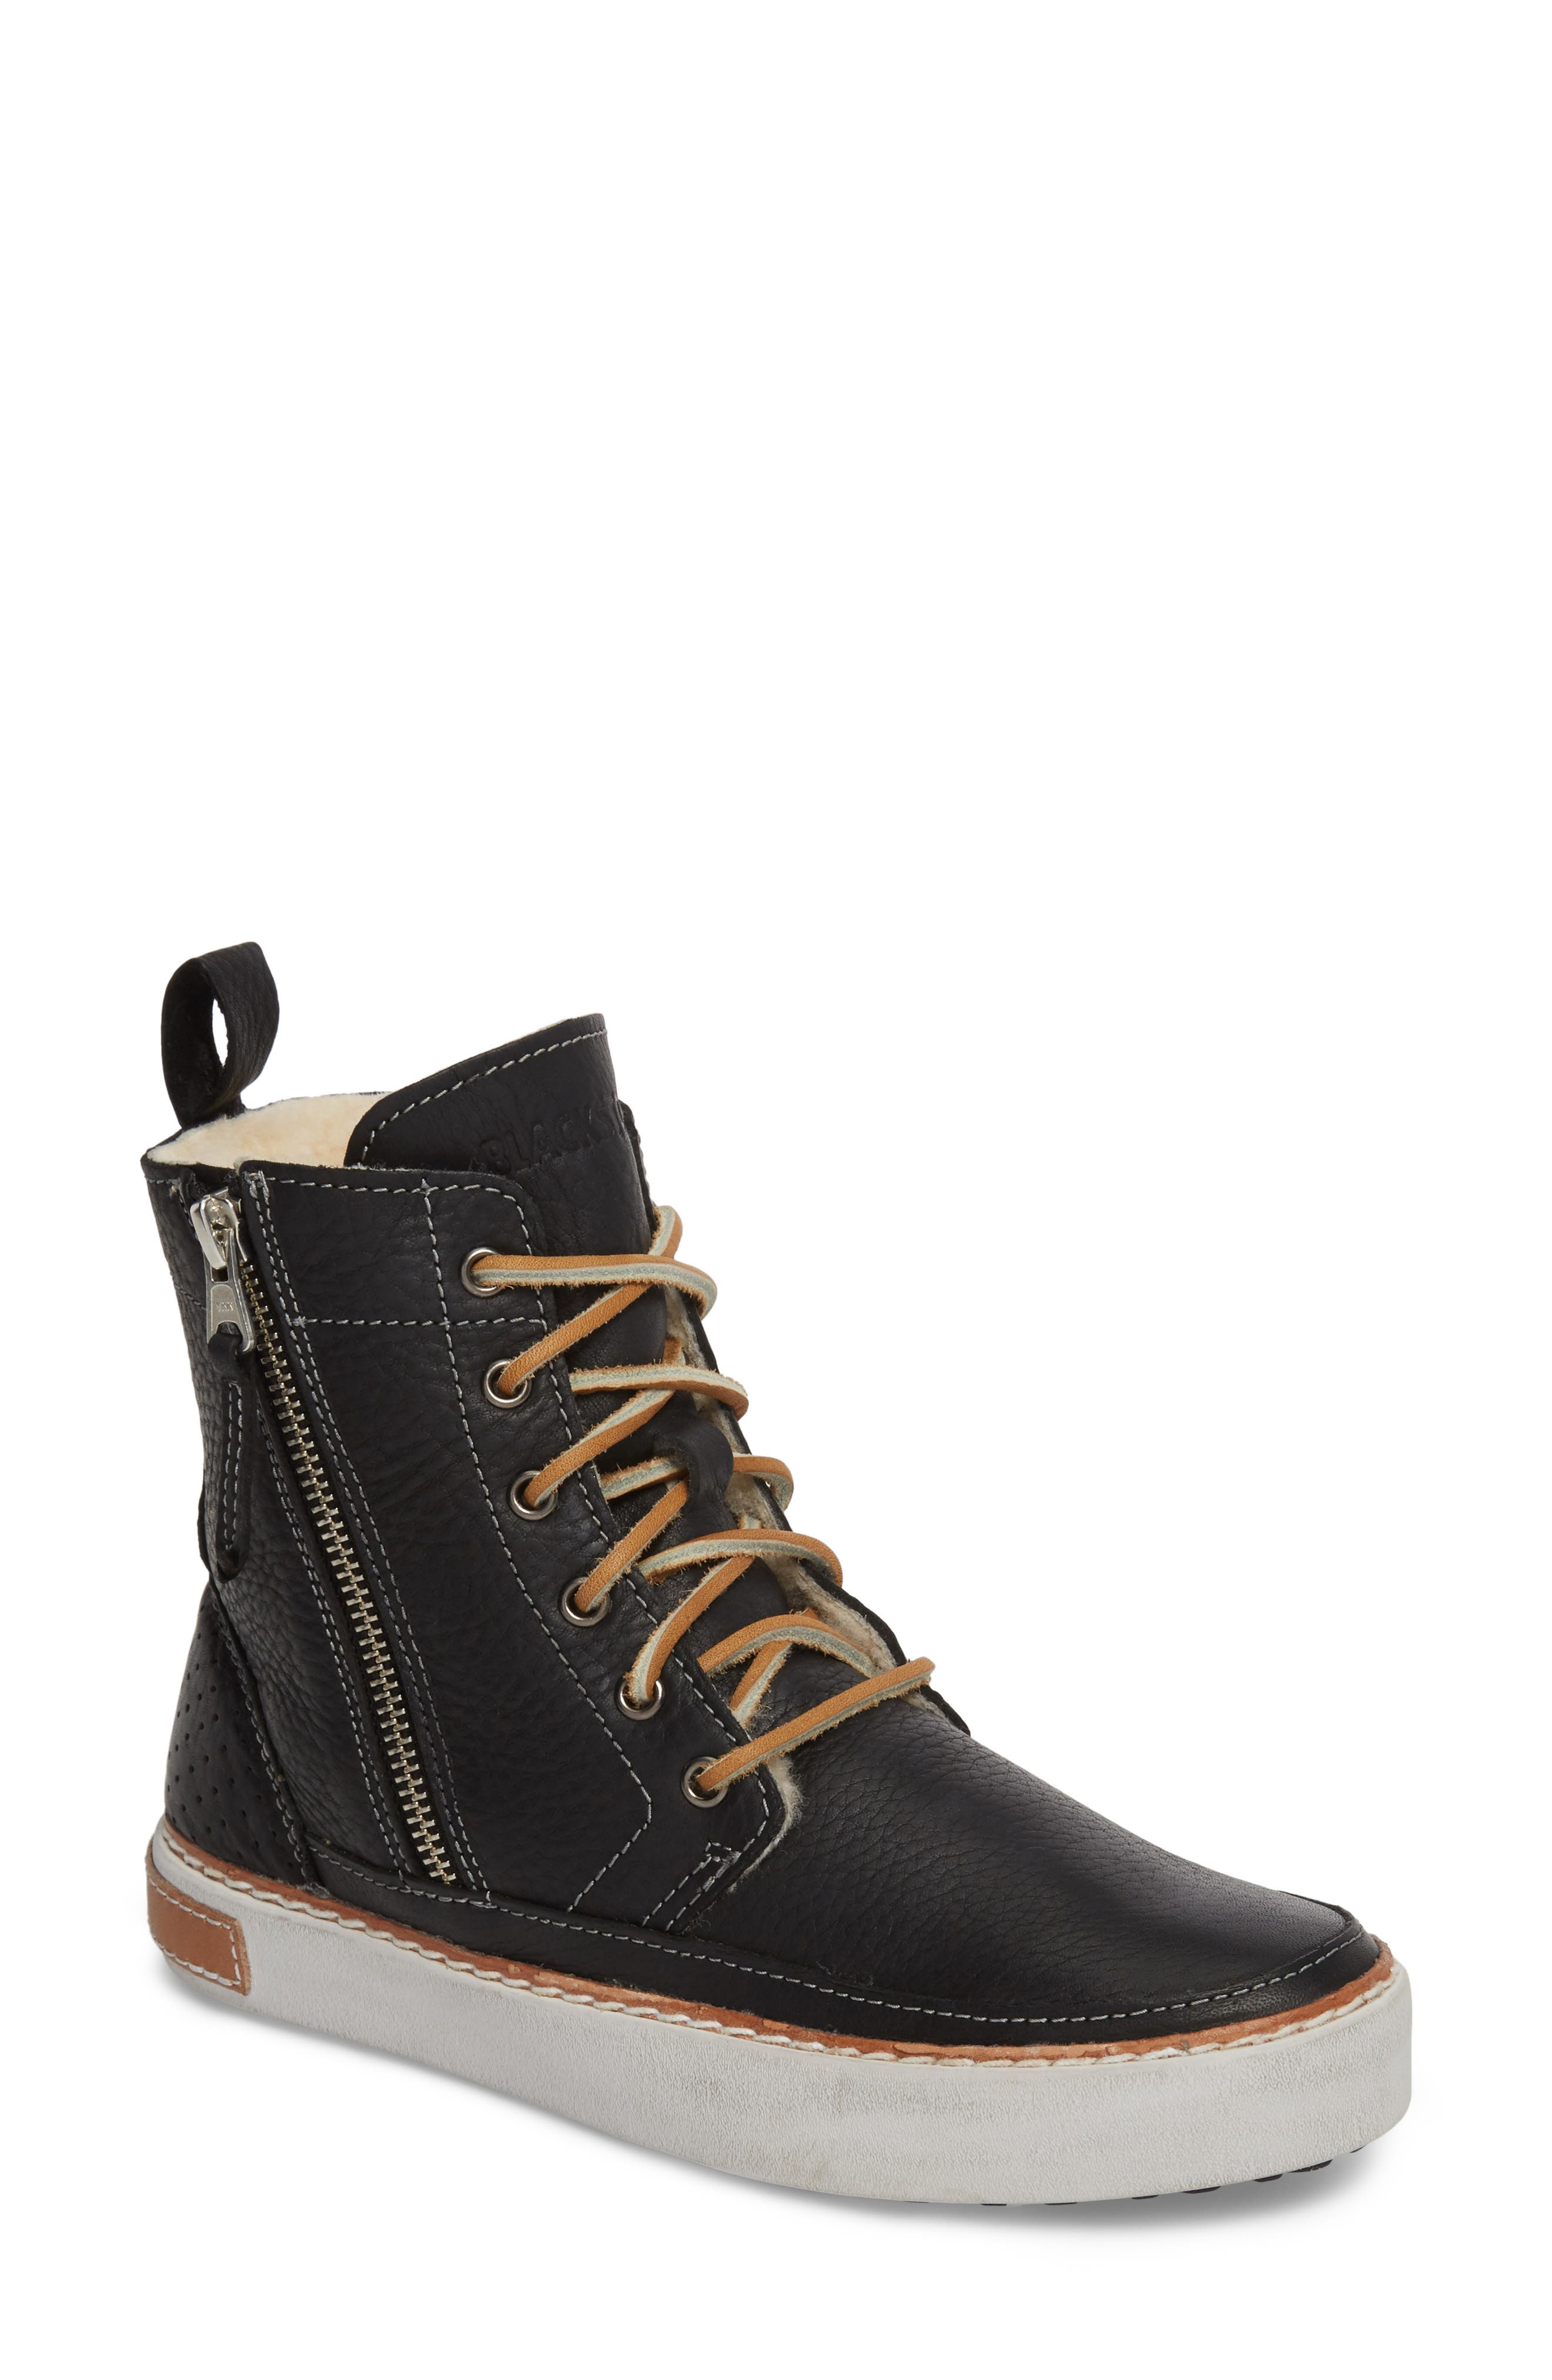 'CW96' Genuine Shearling Lined Sneaker Boot,                         Main,                         color, BLACK LEATHER